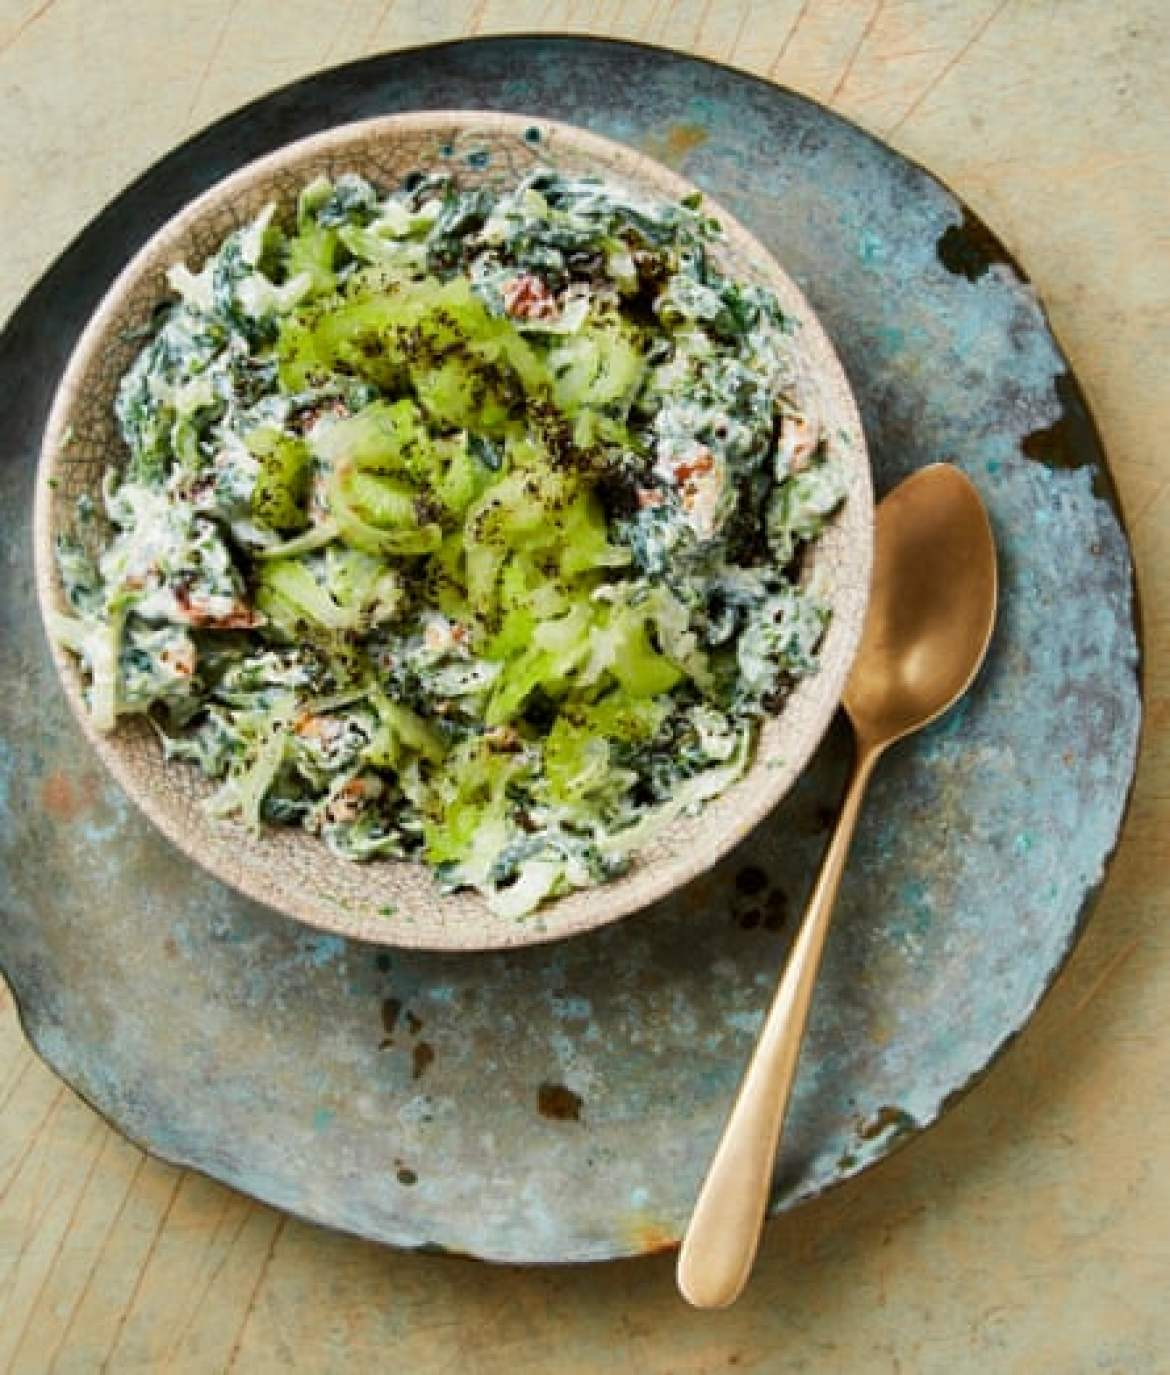 Yotam Ottolenghi's spinach borani with celery and walnuts.